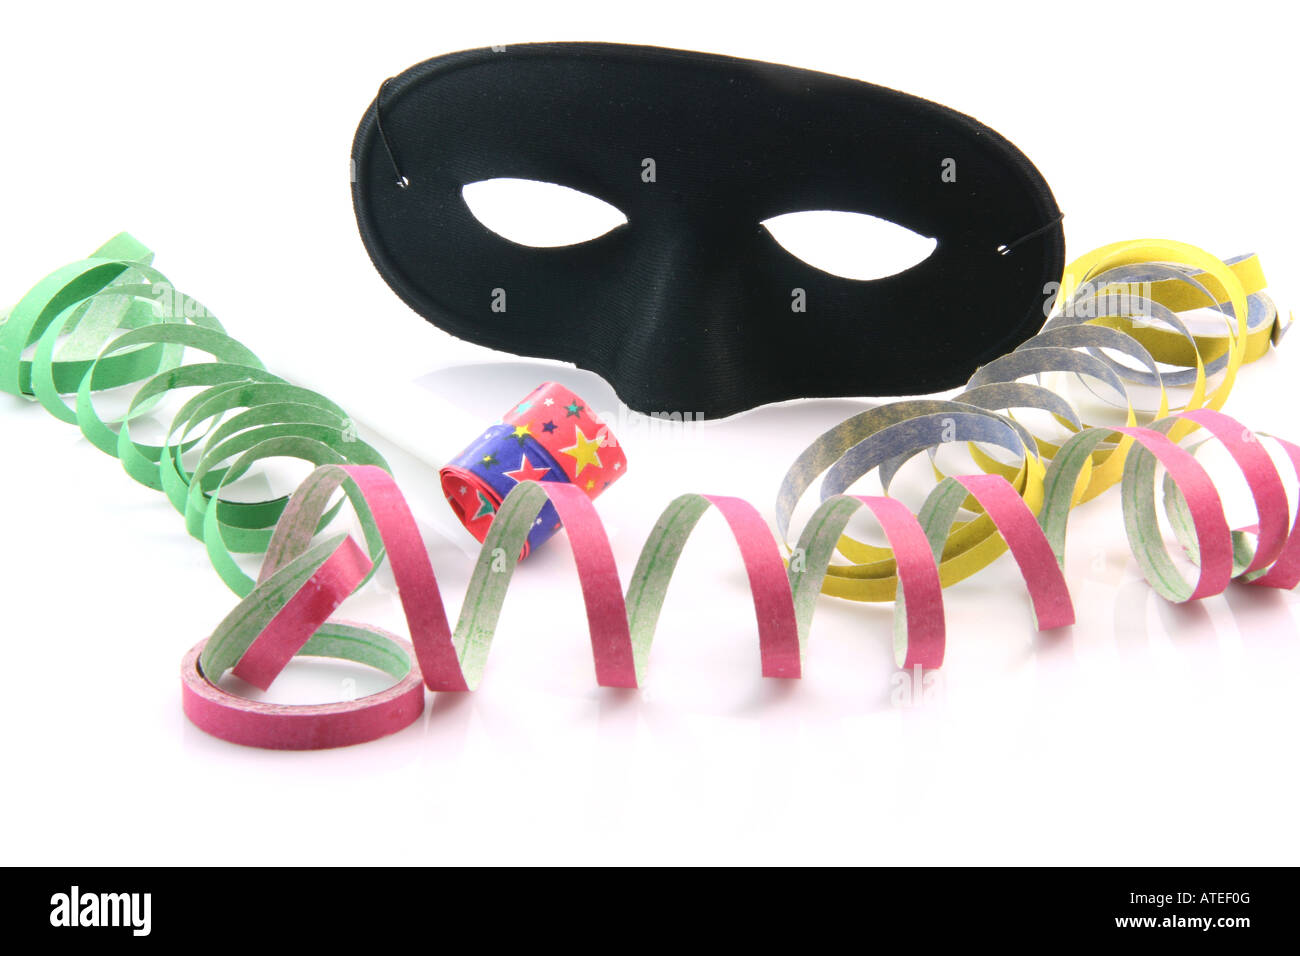 holidays and party time paper streamers party blower and black mask isolated on white background - Stock Image